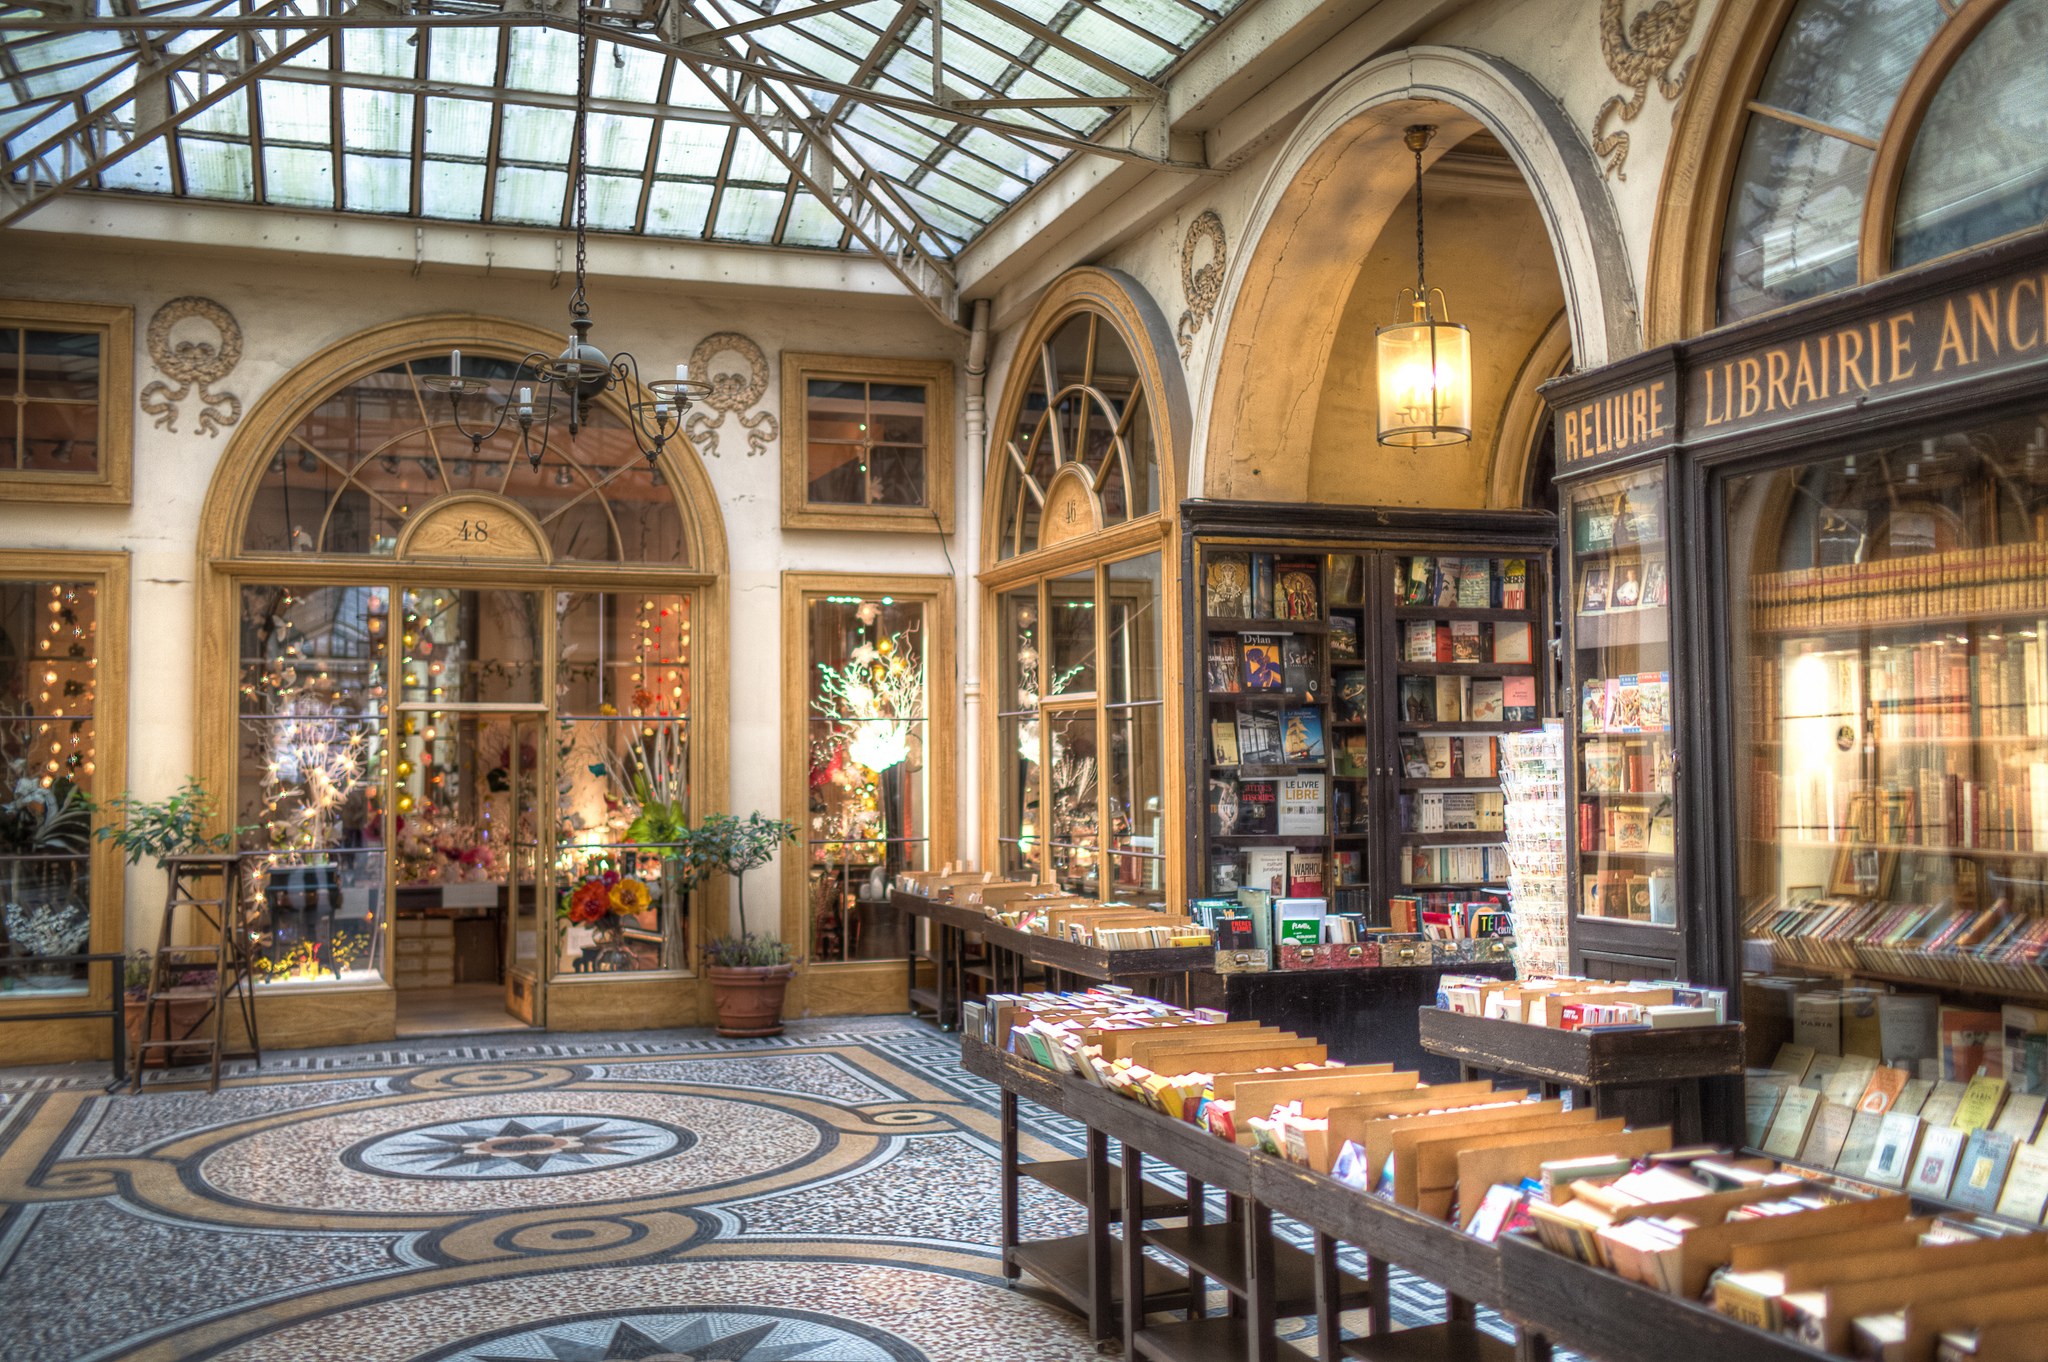 Galerie Vivienne at night. Photo by Chris Chabot via Flickr Creative Commons.